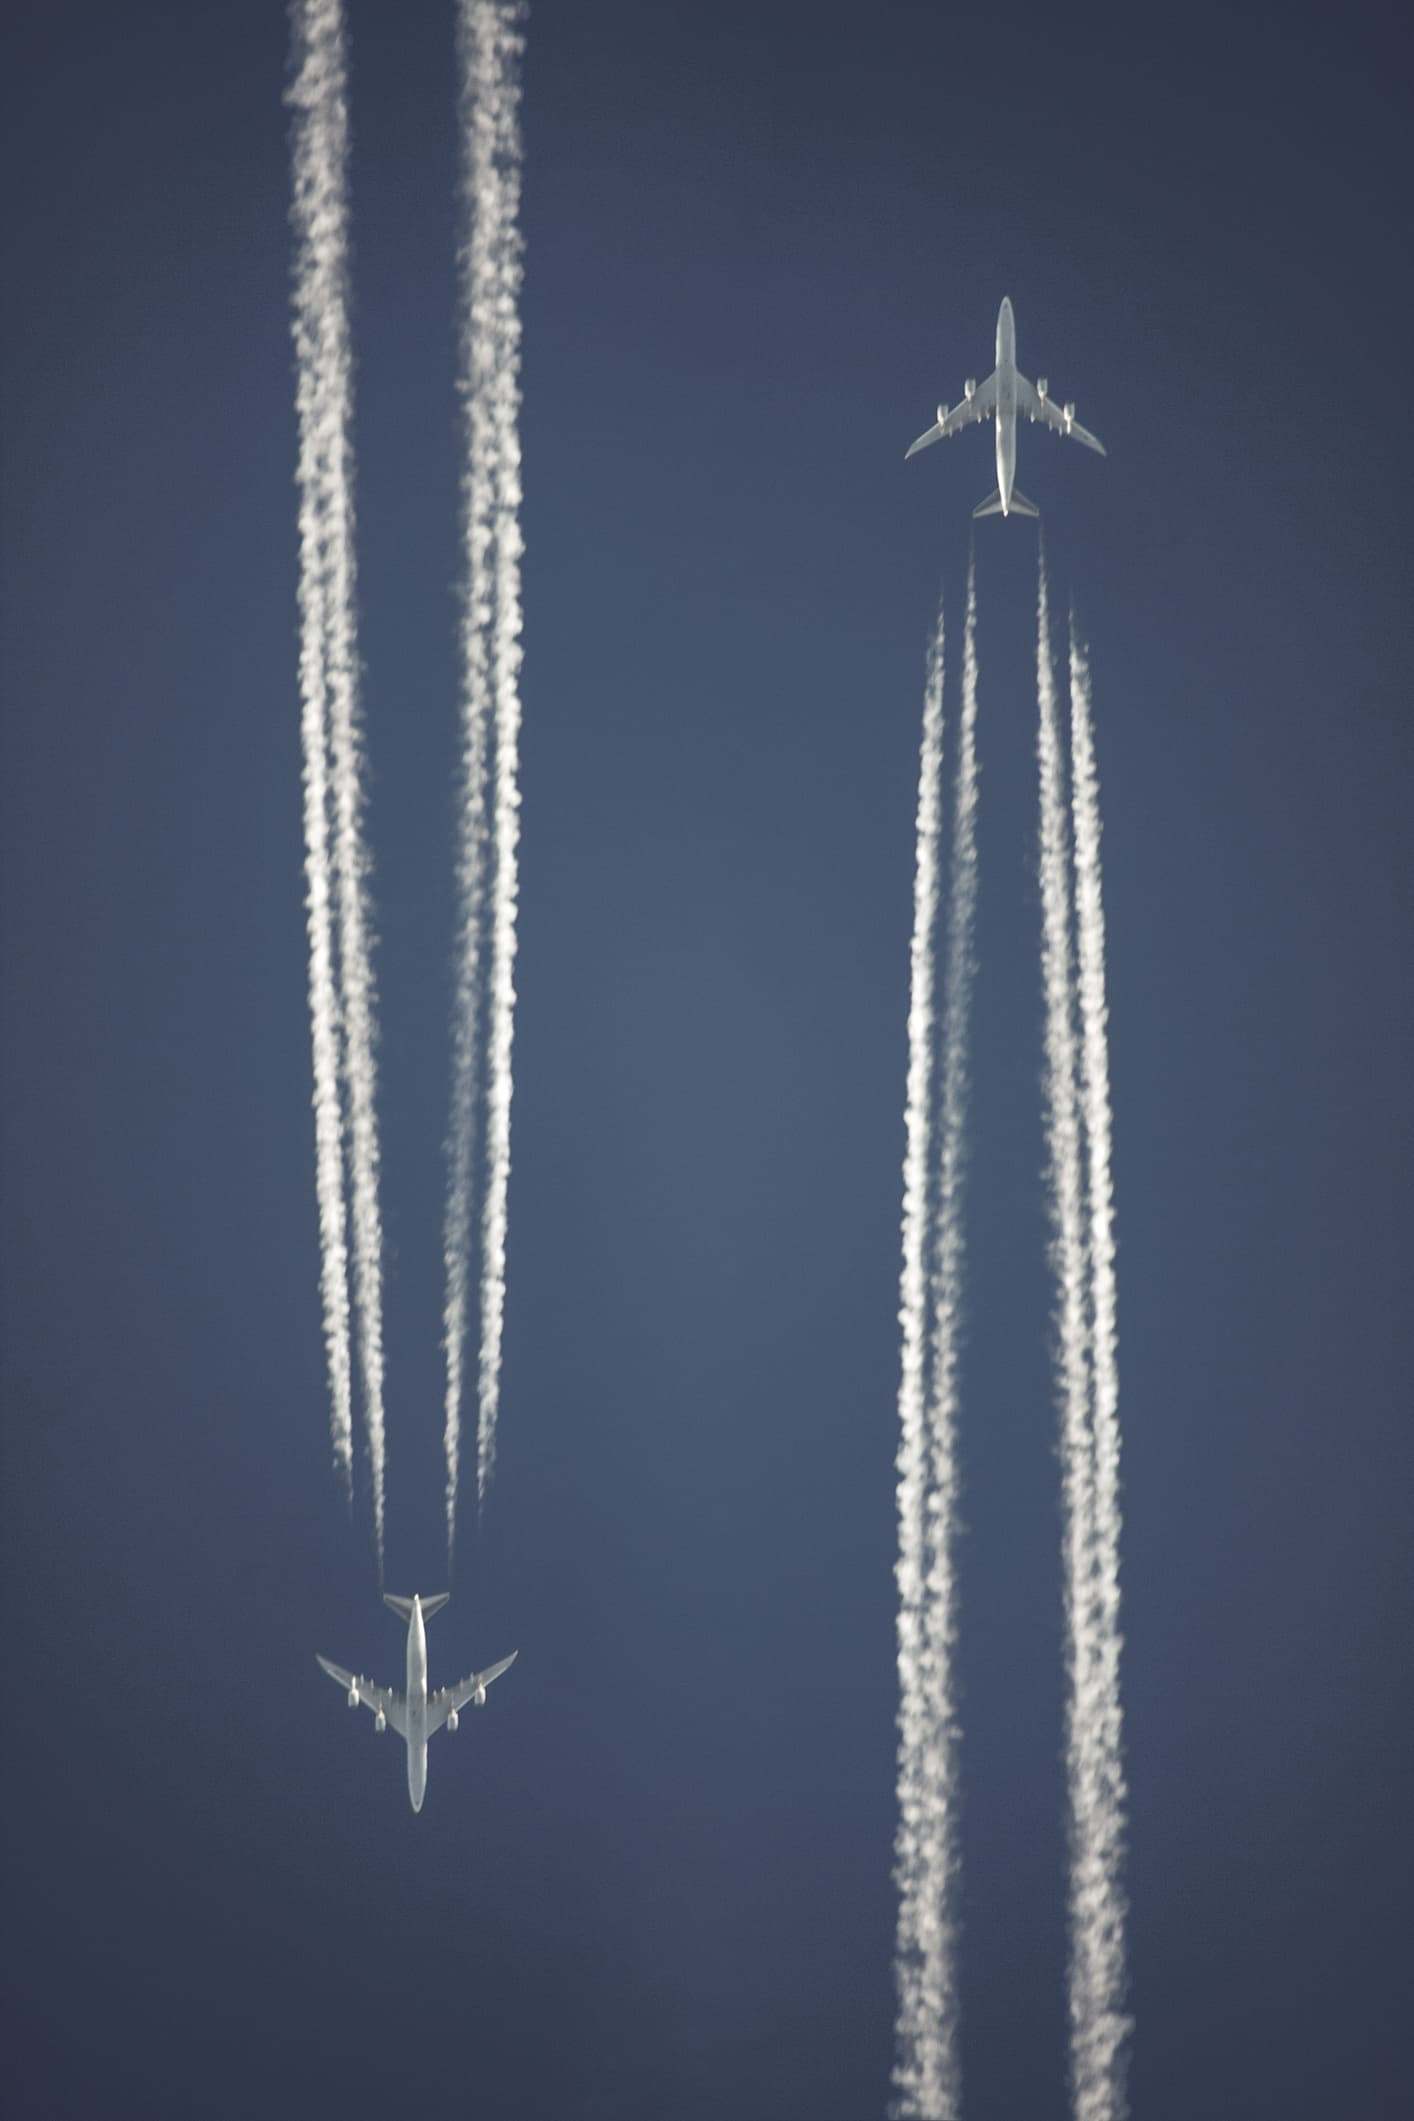 Vapour trails of two airplanes passing by